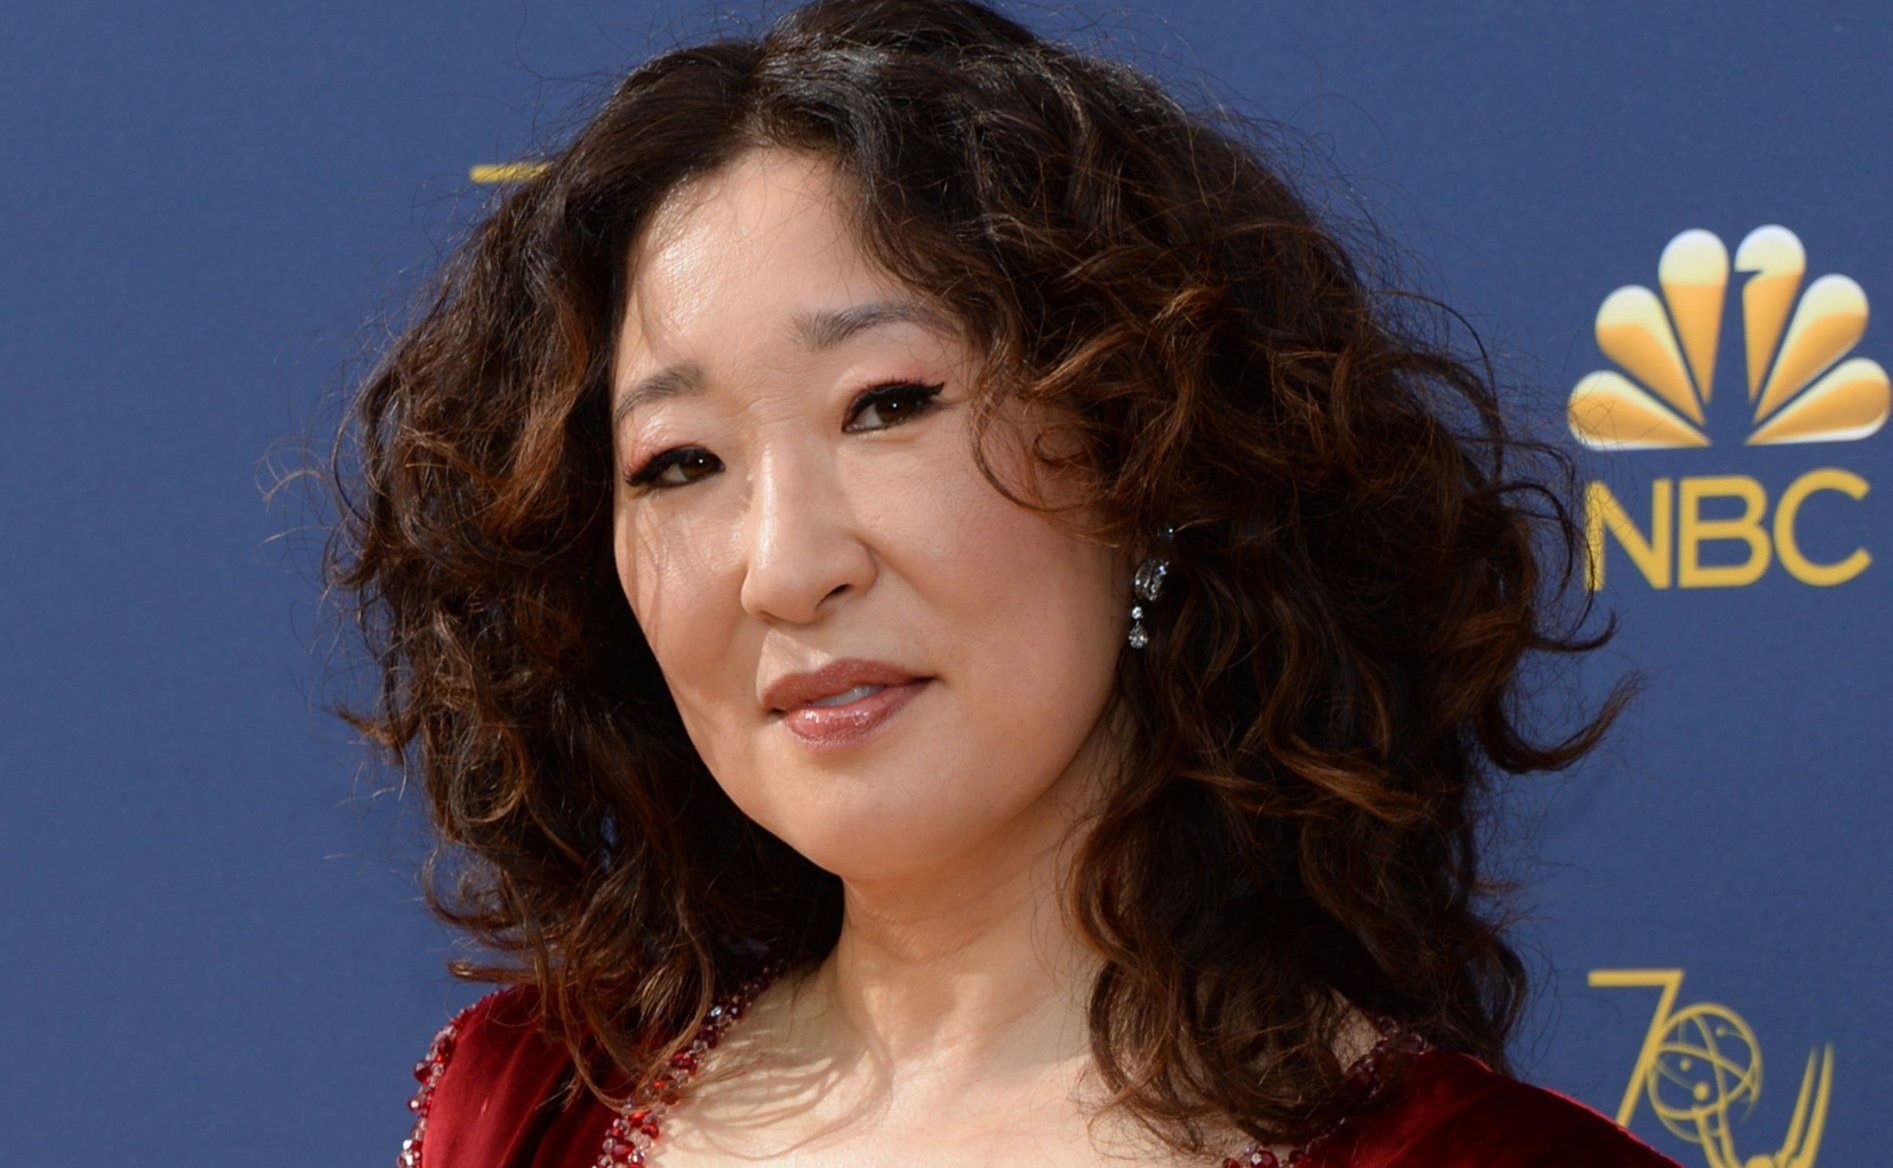 Canadian actress Sandra Oh age, husband and TV series from Killing Eve to Grey's Anatomy